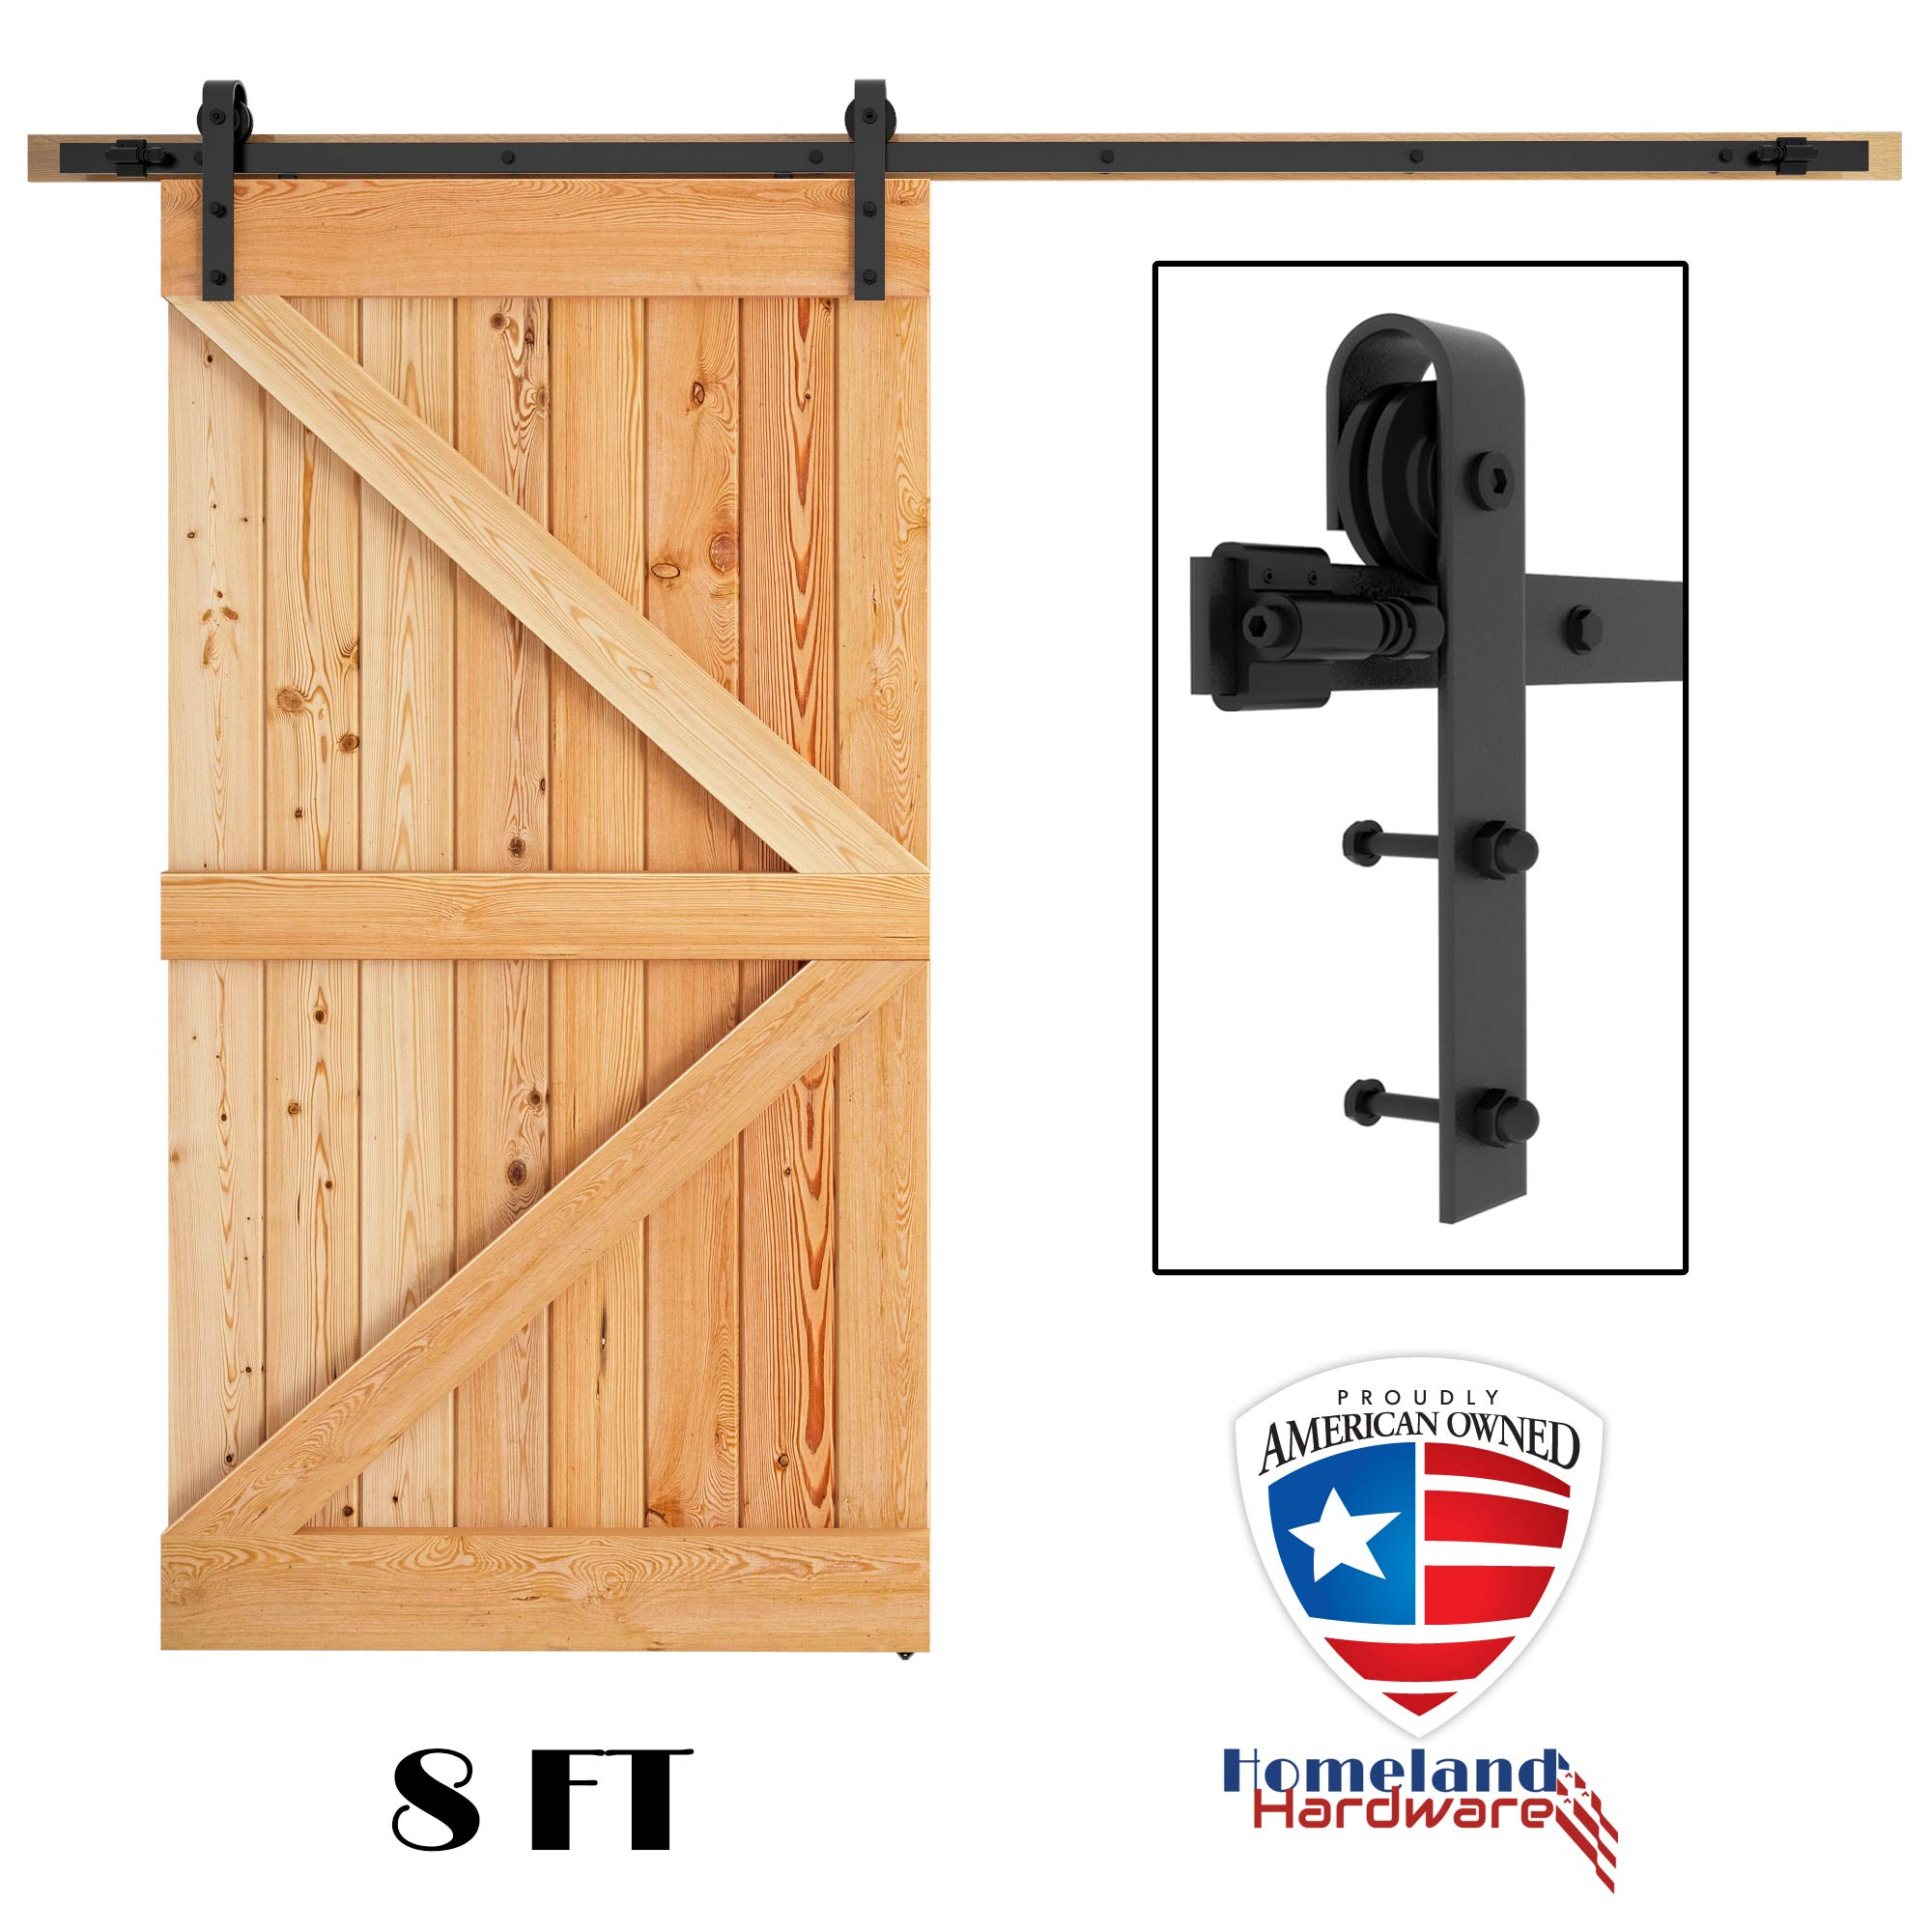 8 FT Sliding Barn Door Hardware Kit, ONE Single Rail HOMELAND HARDWARE (US Based Seller)